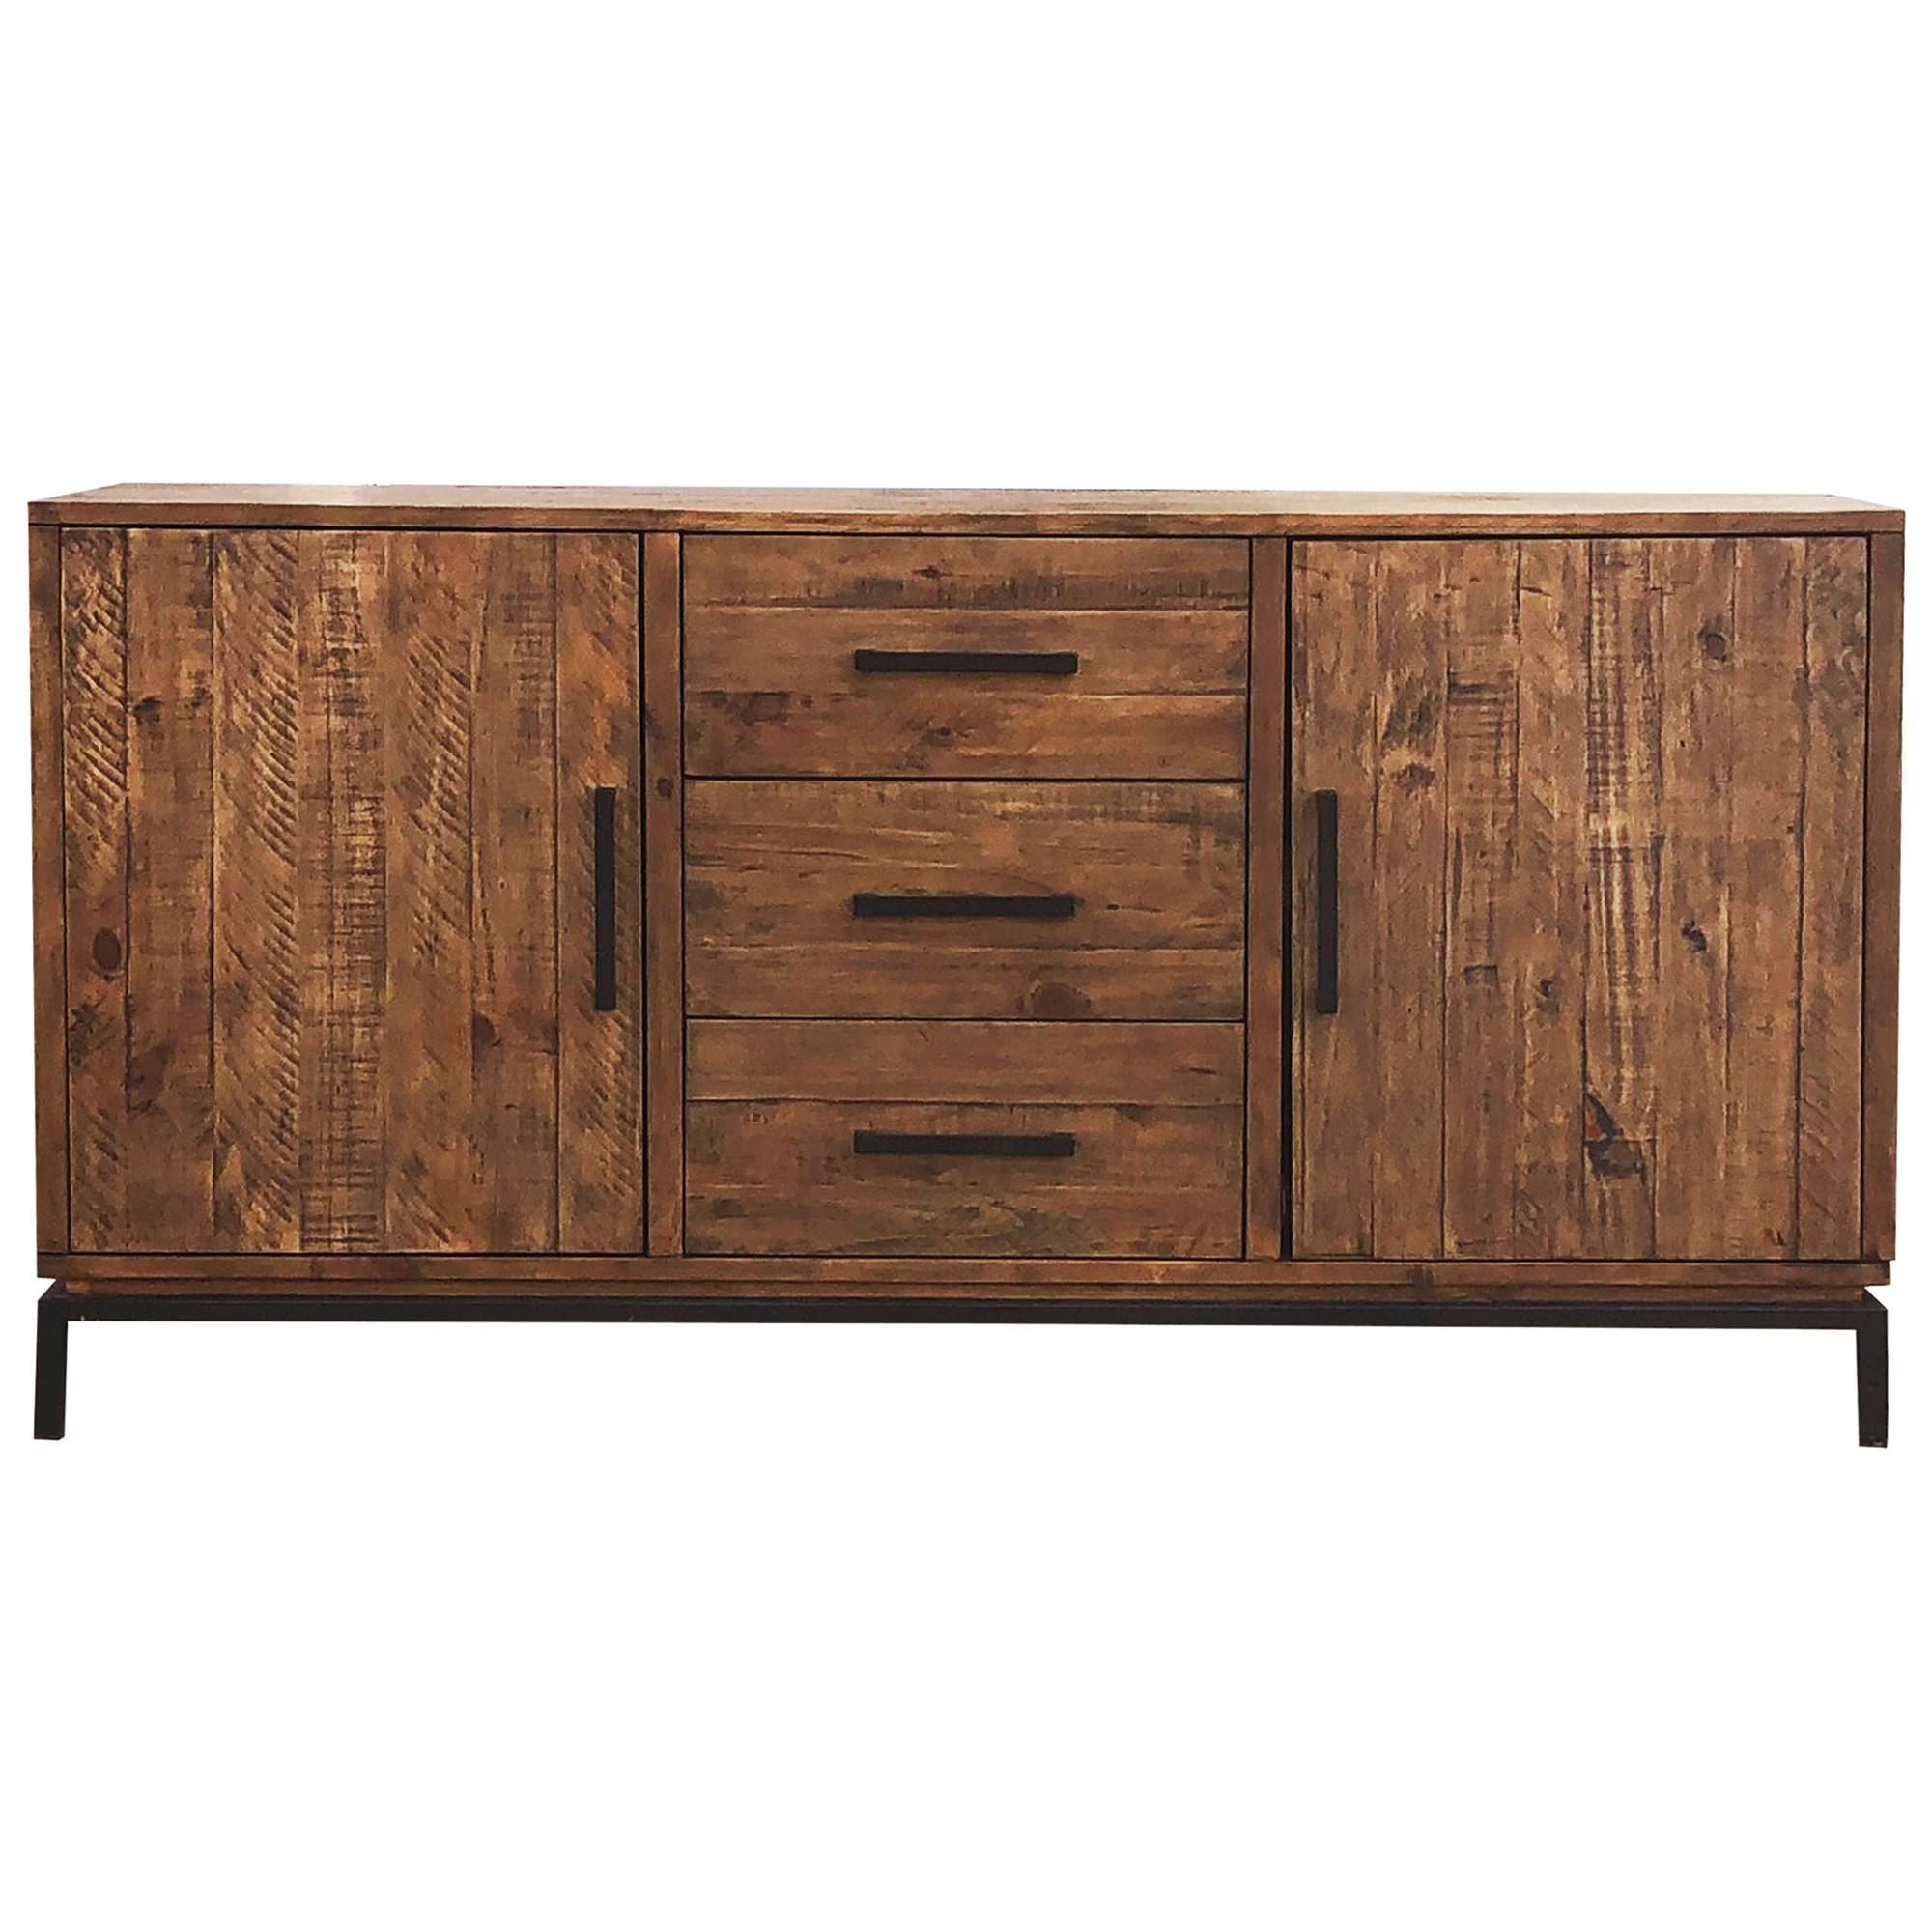 Ermou Pine Timber 2 Door 3 Drawer Buffet Table, 160cm